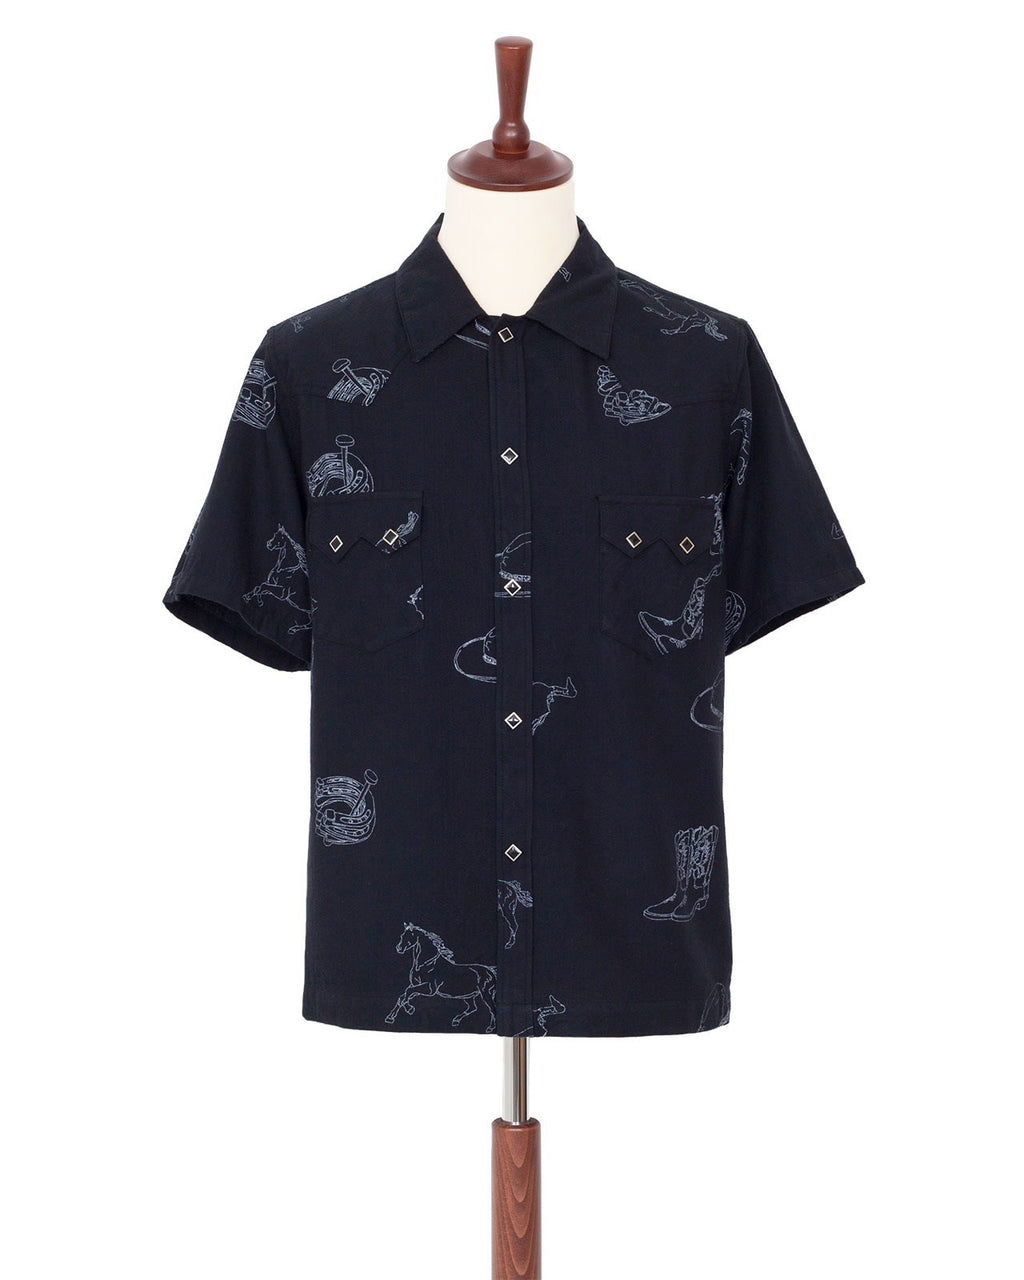 The Letters Short Sleeve Shirt, Western Pattern, Black